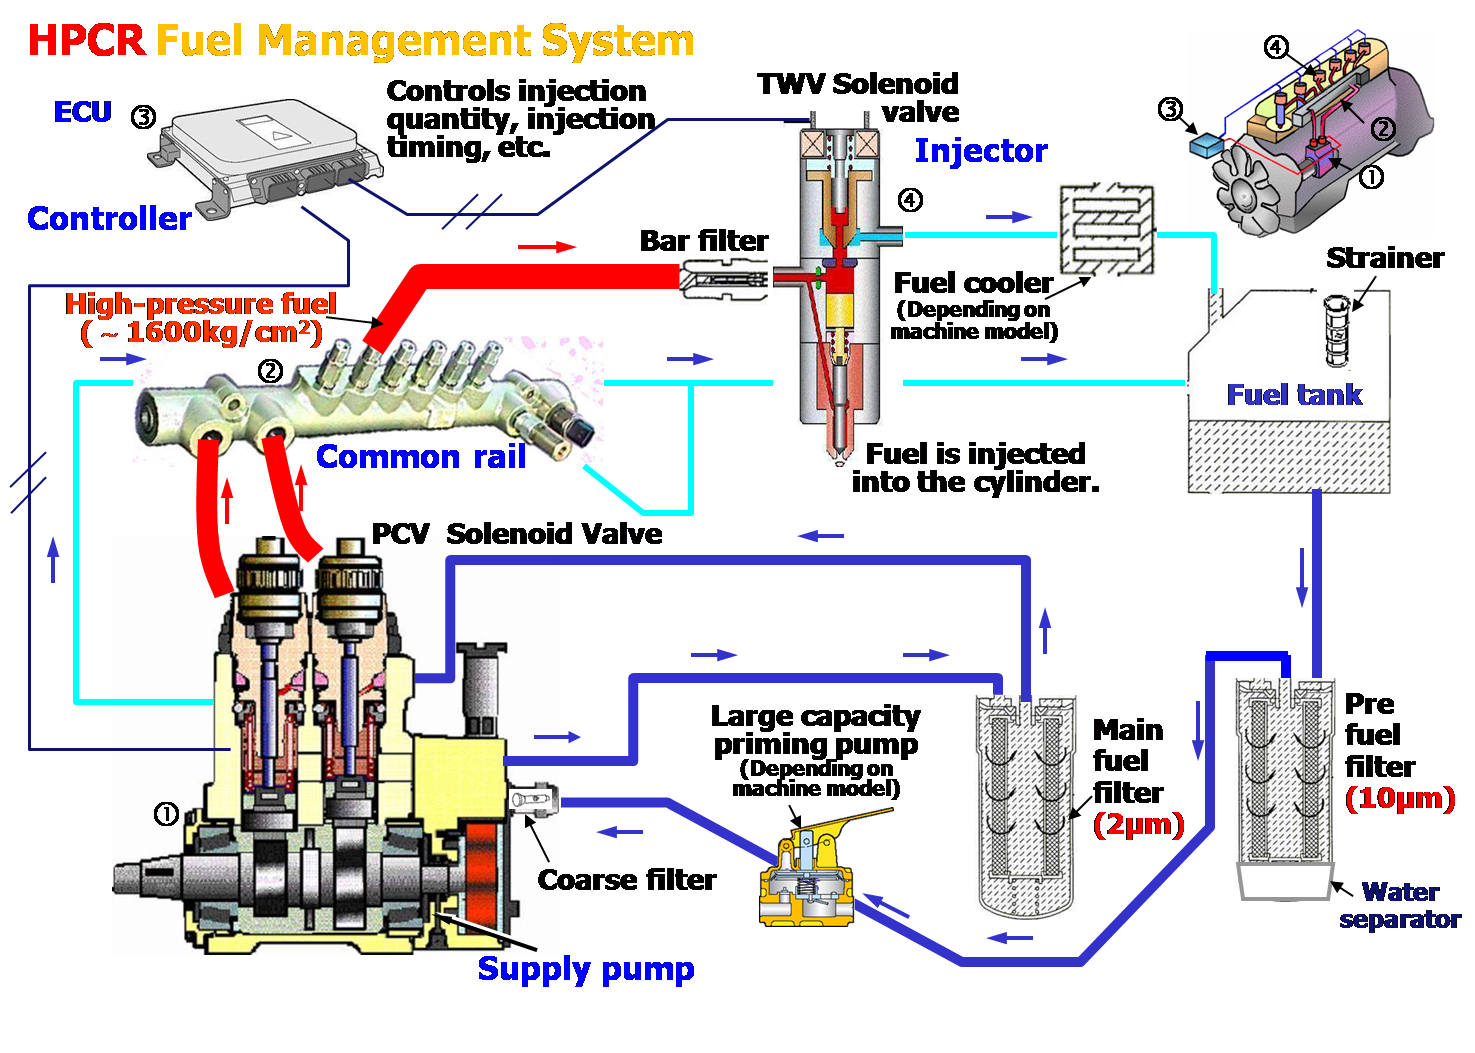 HPCR+system cat c15 engine wiring diagram cat 3406 engine wiring diagram cat c15 acert wiring diagram at gsmx.co